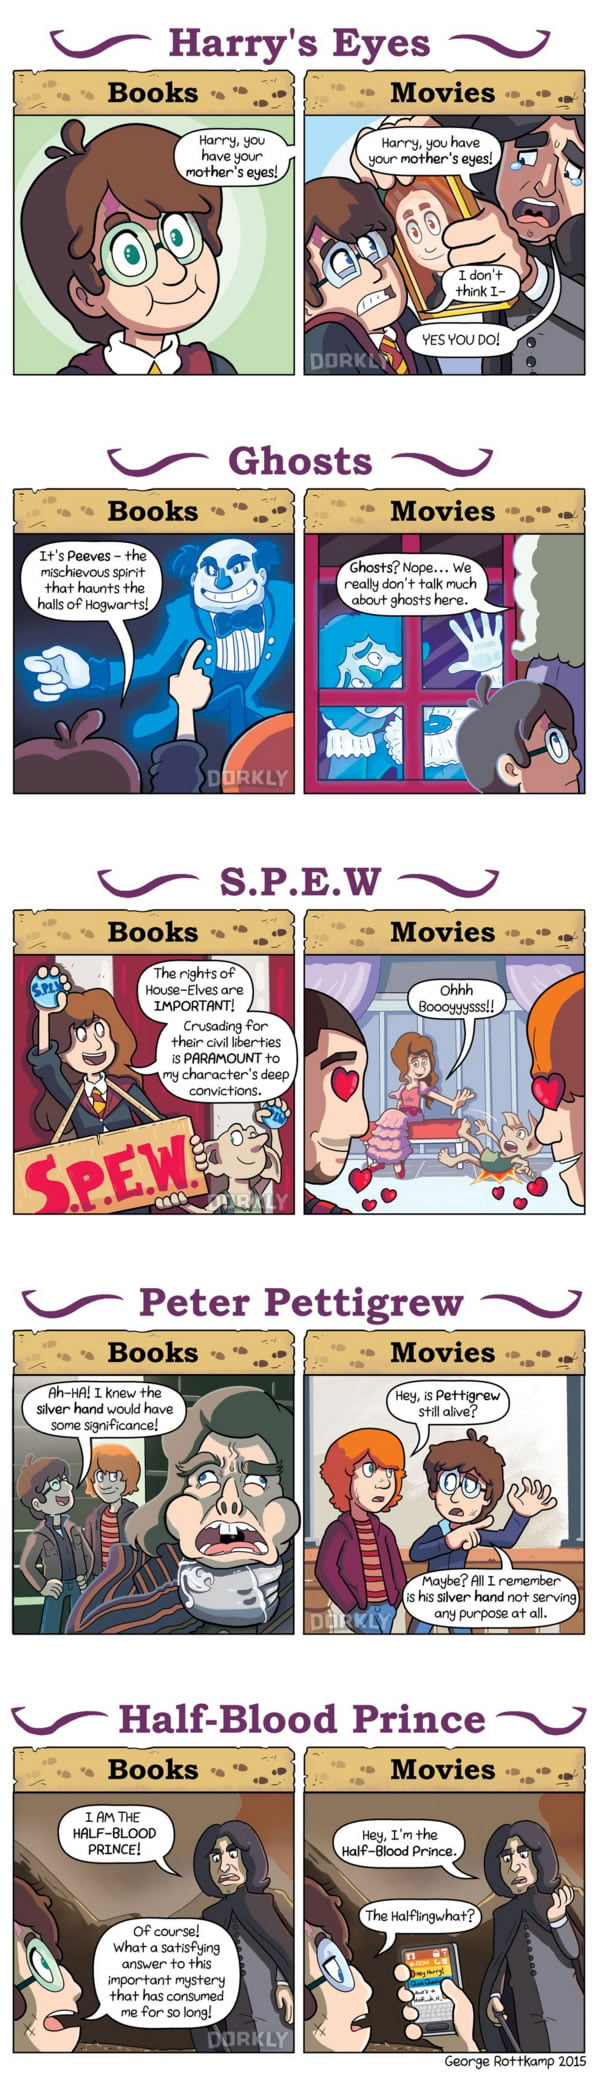 Harry Potter Book And Movie Differences ~ Harry potter books vs movies gag